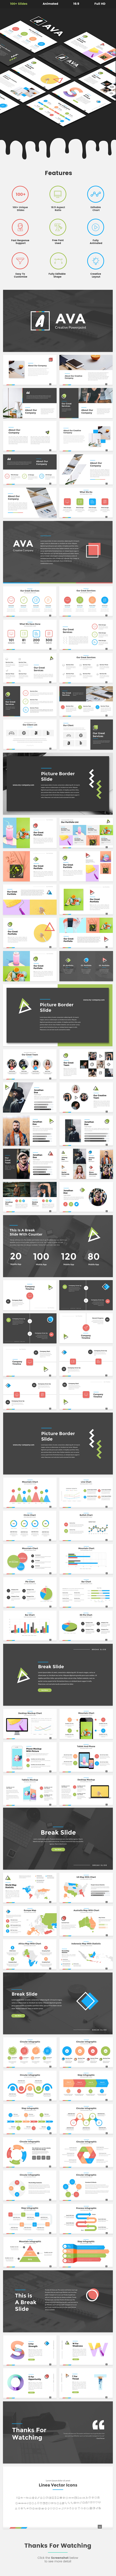 Ava - Creative Powerpoint Template - Creative PowerPoint Templates